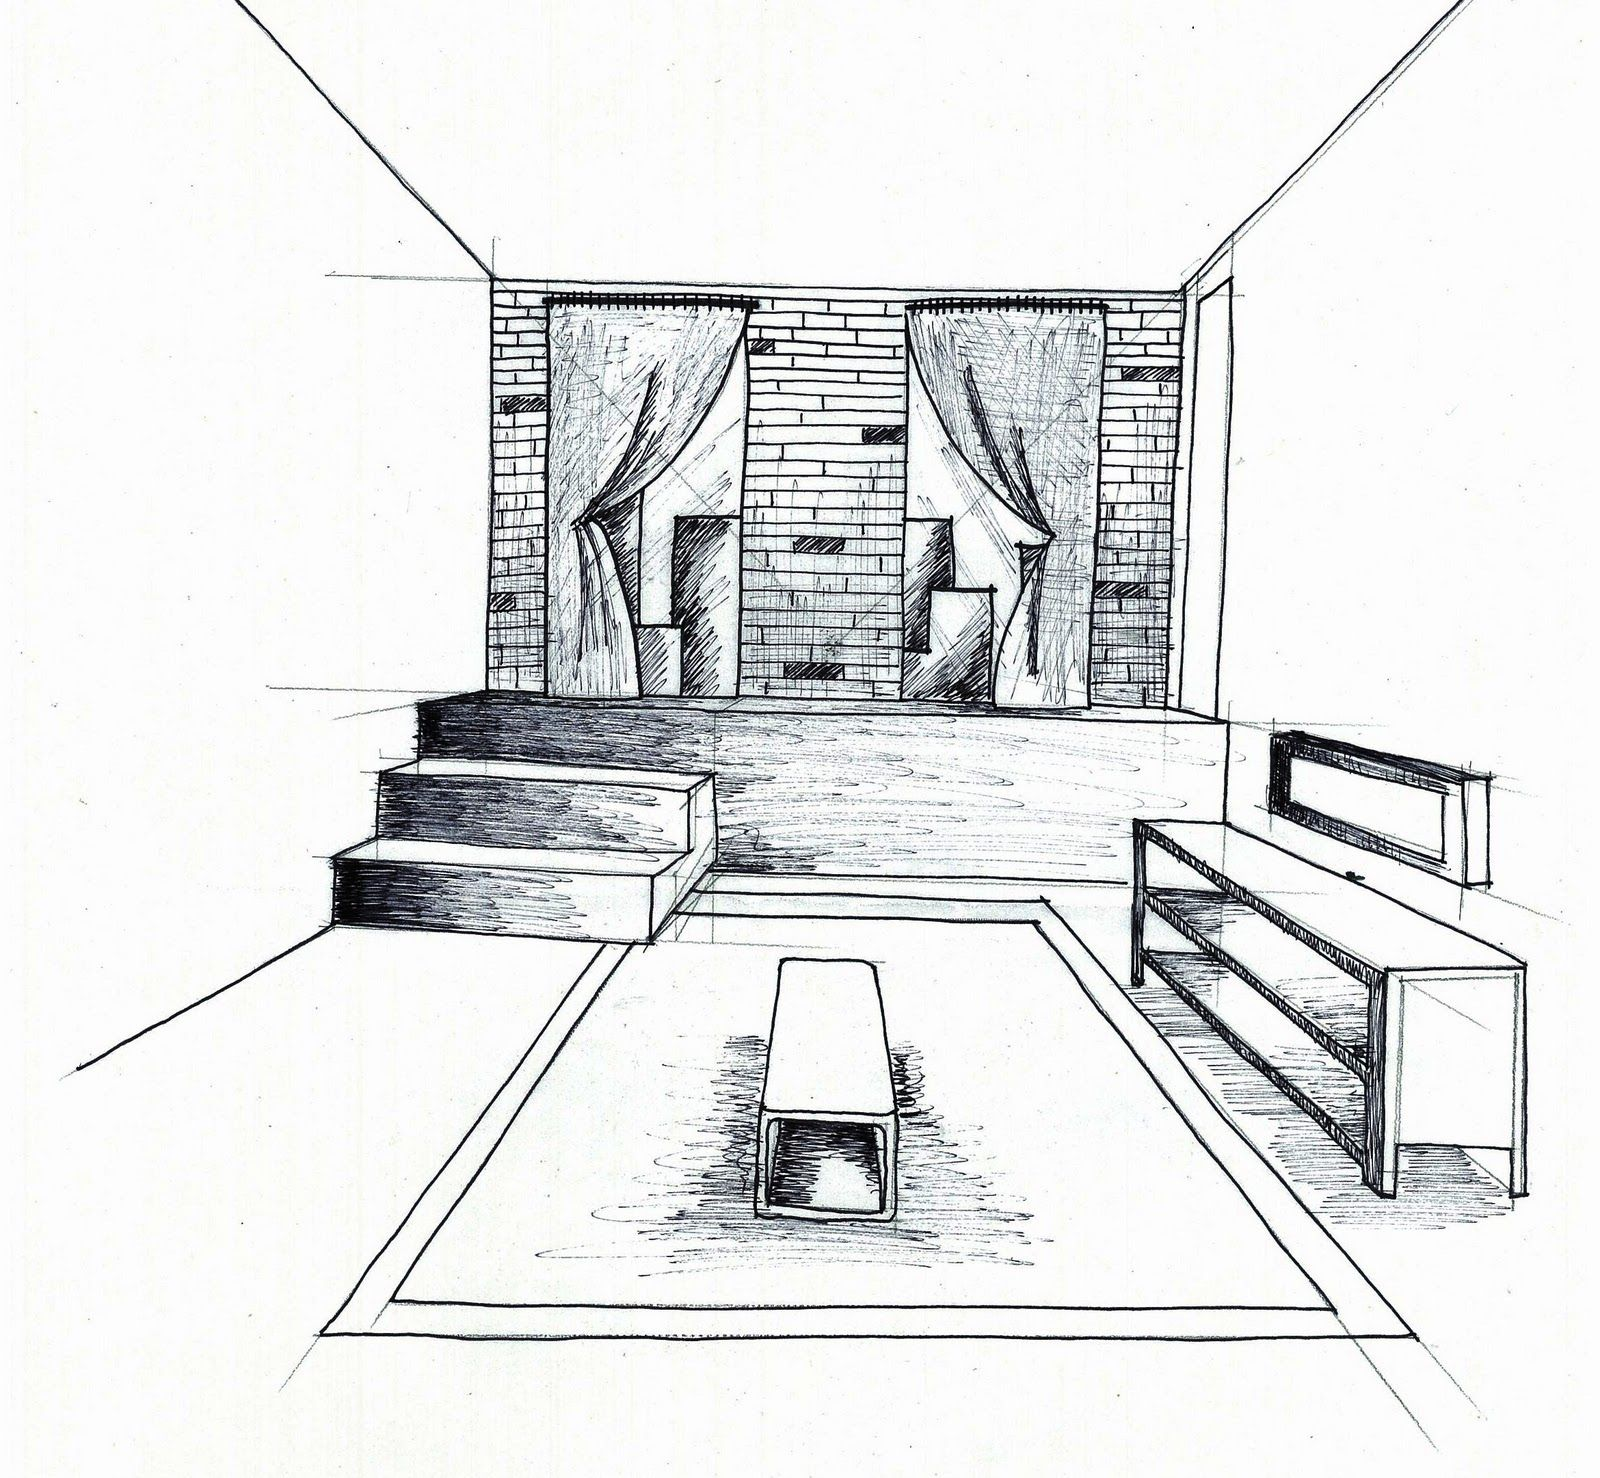 Simple Bedroom Drawing 1 Point Of View Room In Drawing  Point Perspective Drawing